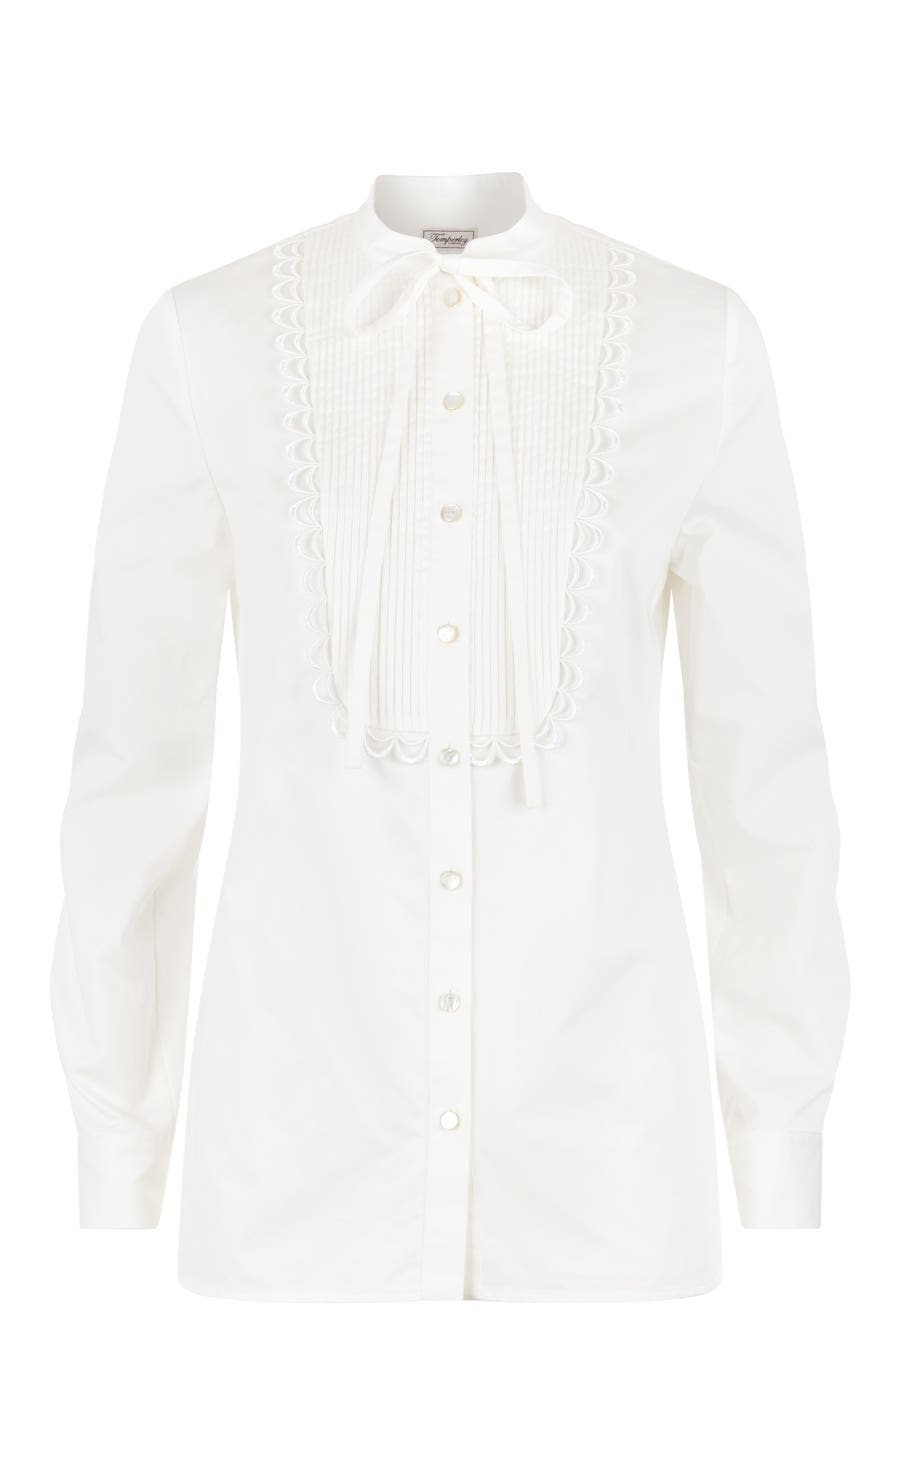 Fountain Shirt, White